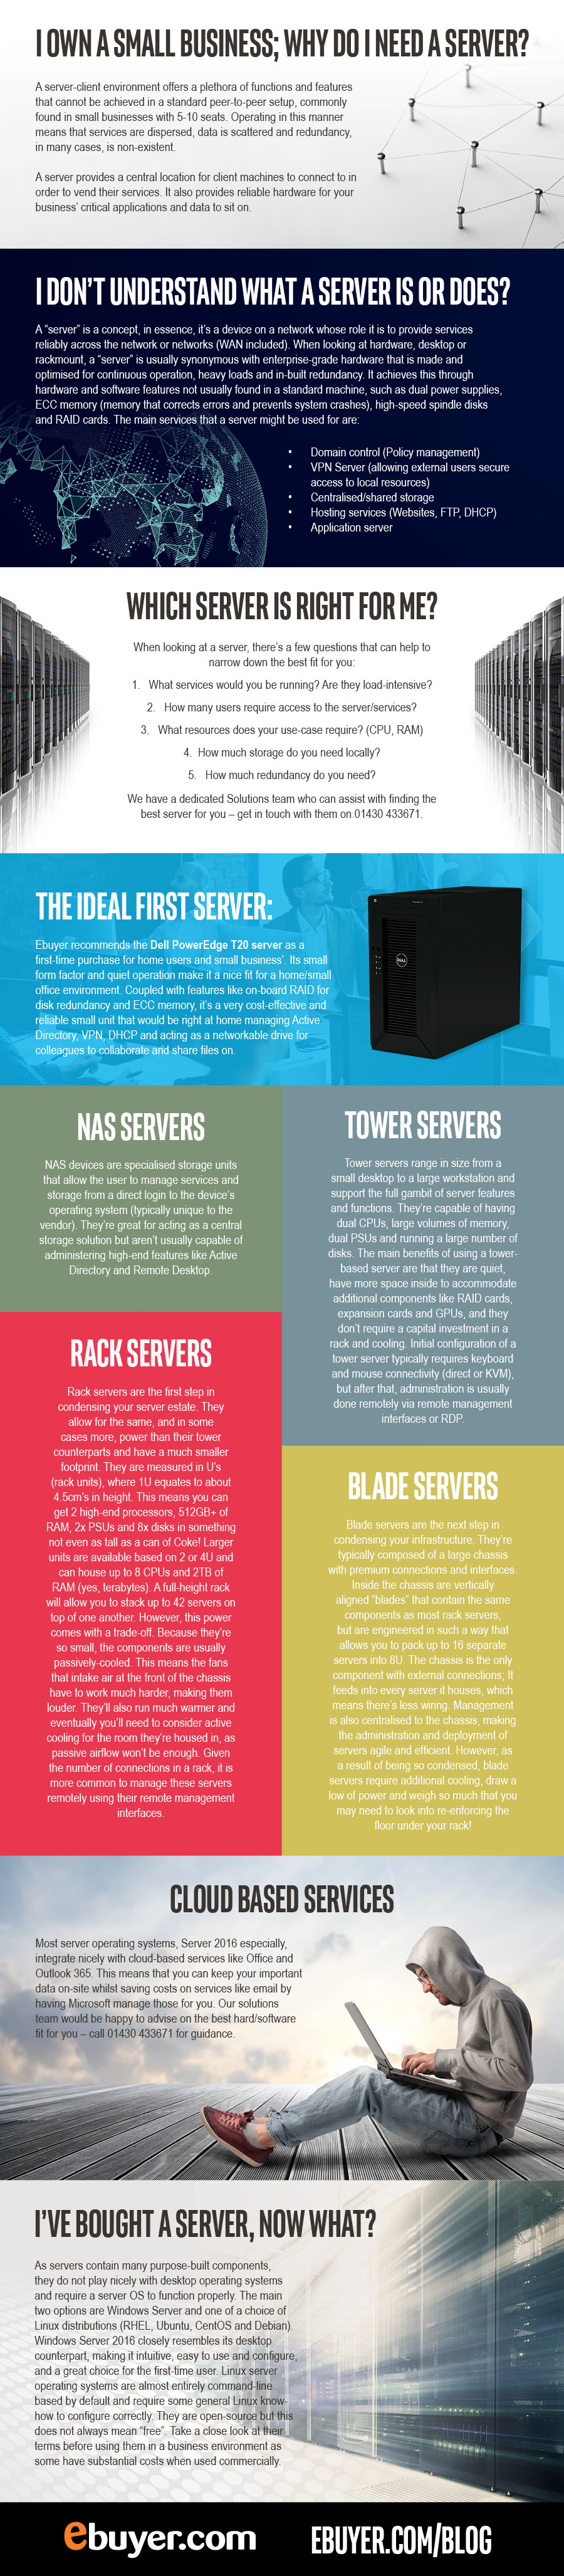 why small businesses need servers